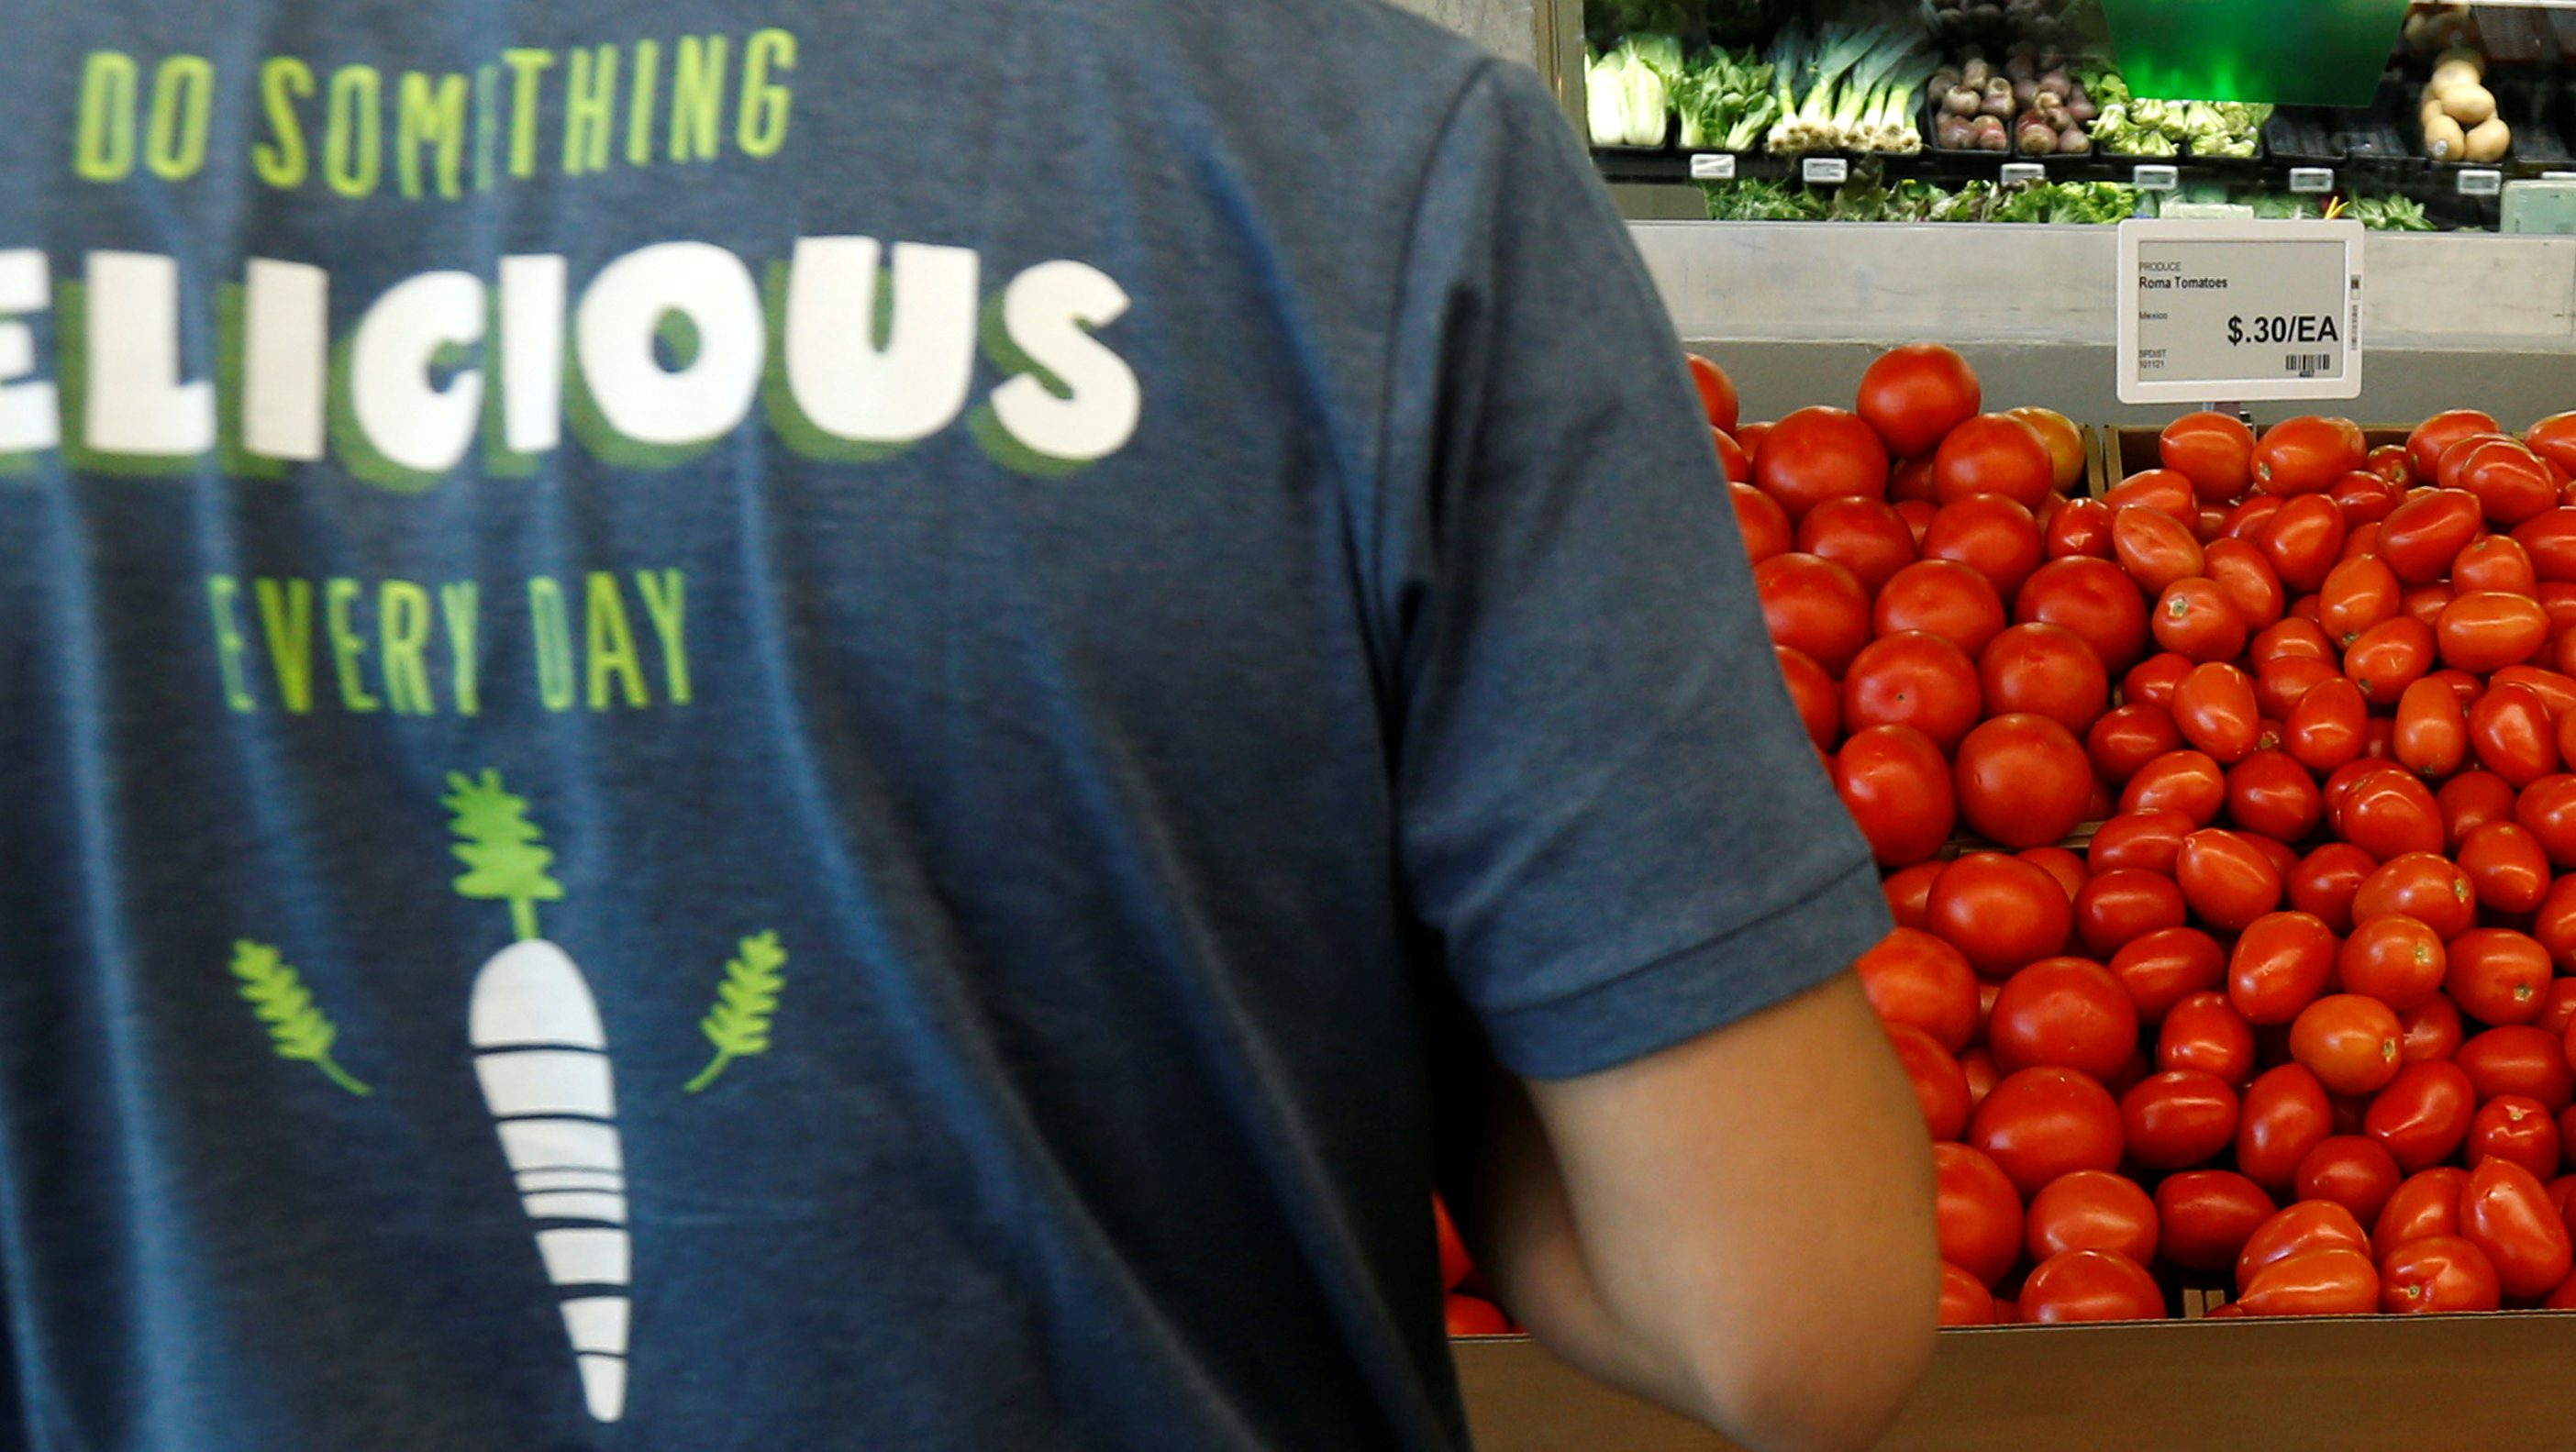 Tomatoes for sale are pictured at a 365 by Whole Foods Market grocery store ahead of its opening day in Los Angeles, U.S., May 24, 2016. REUTERS/Mario Anzuoni - RTSFTYR